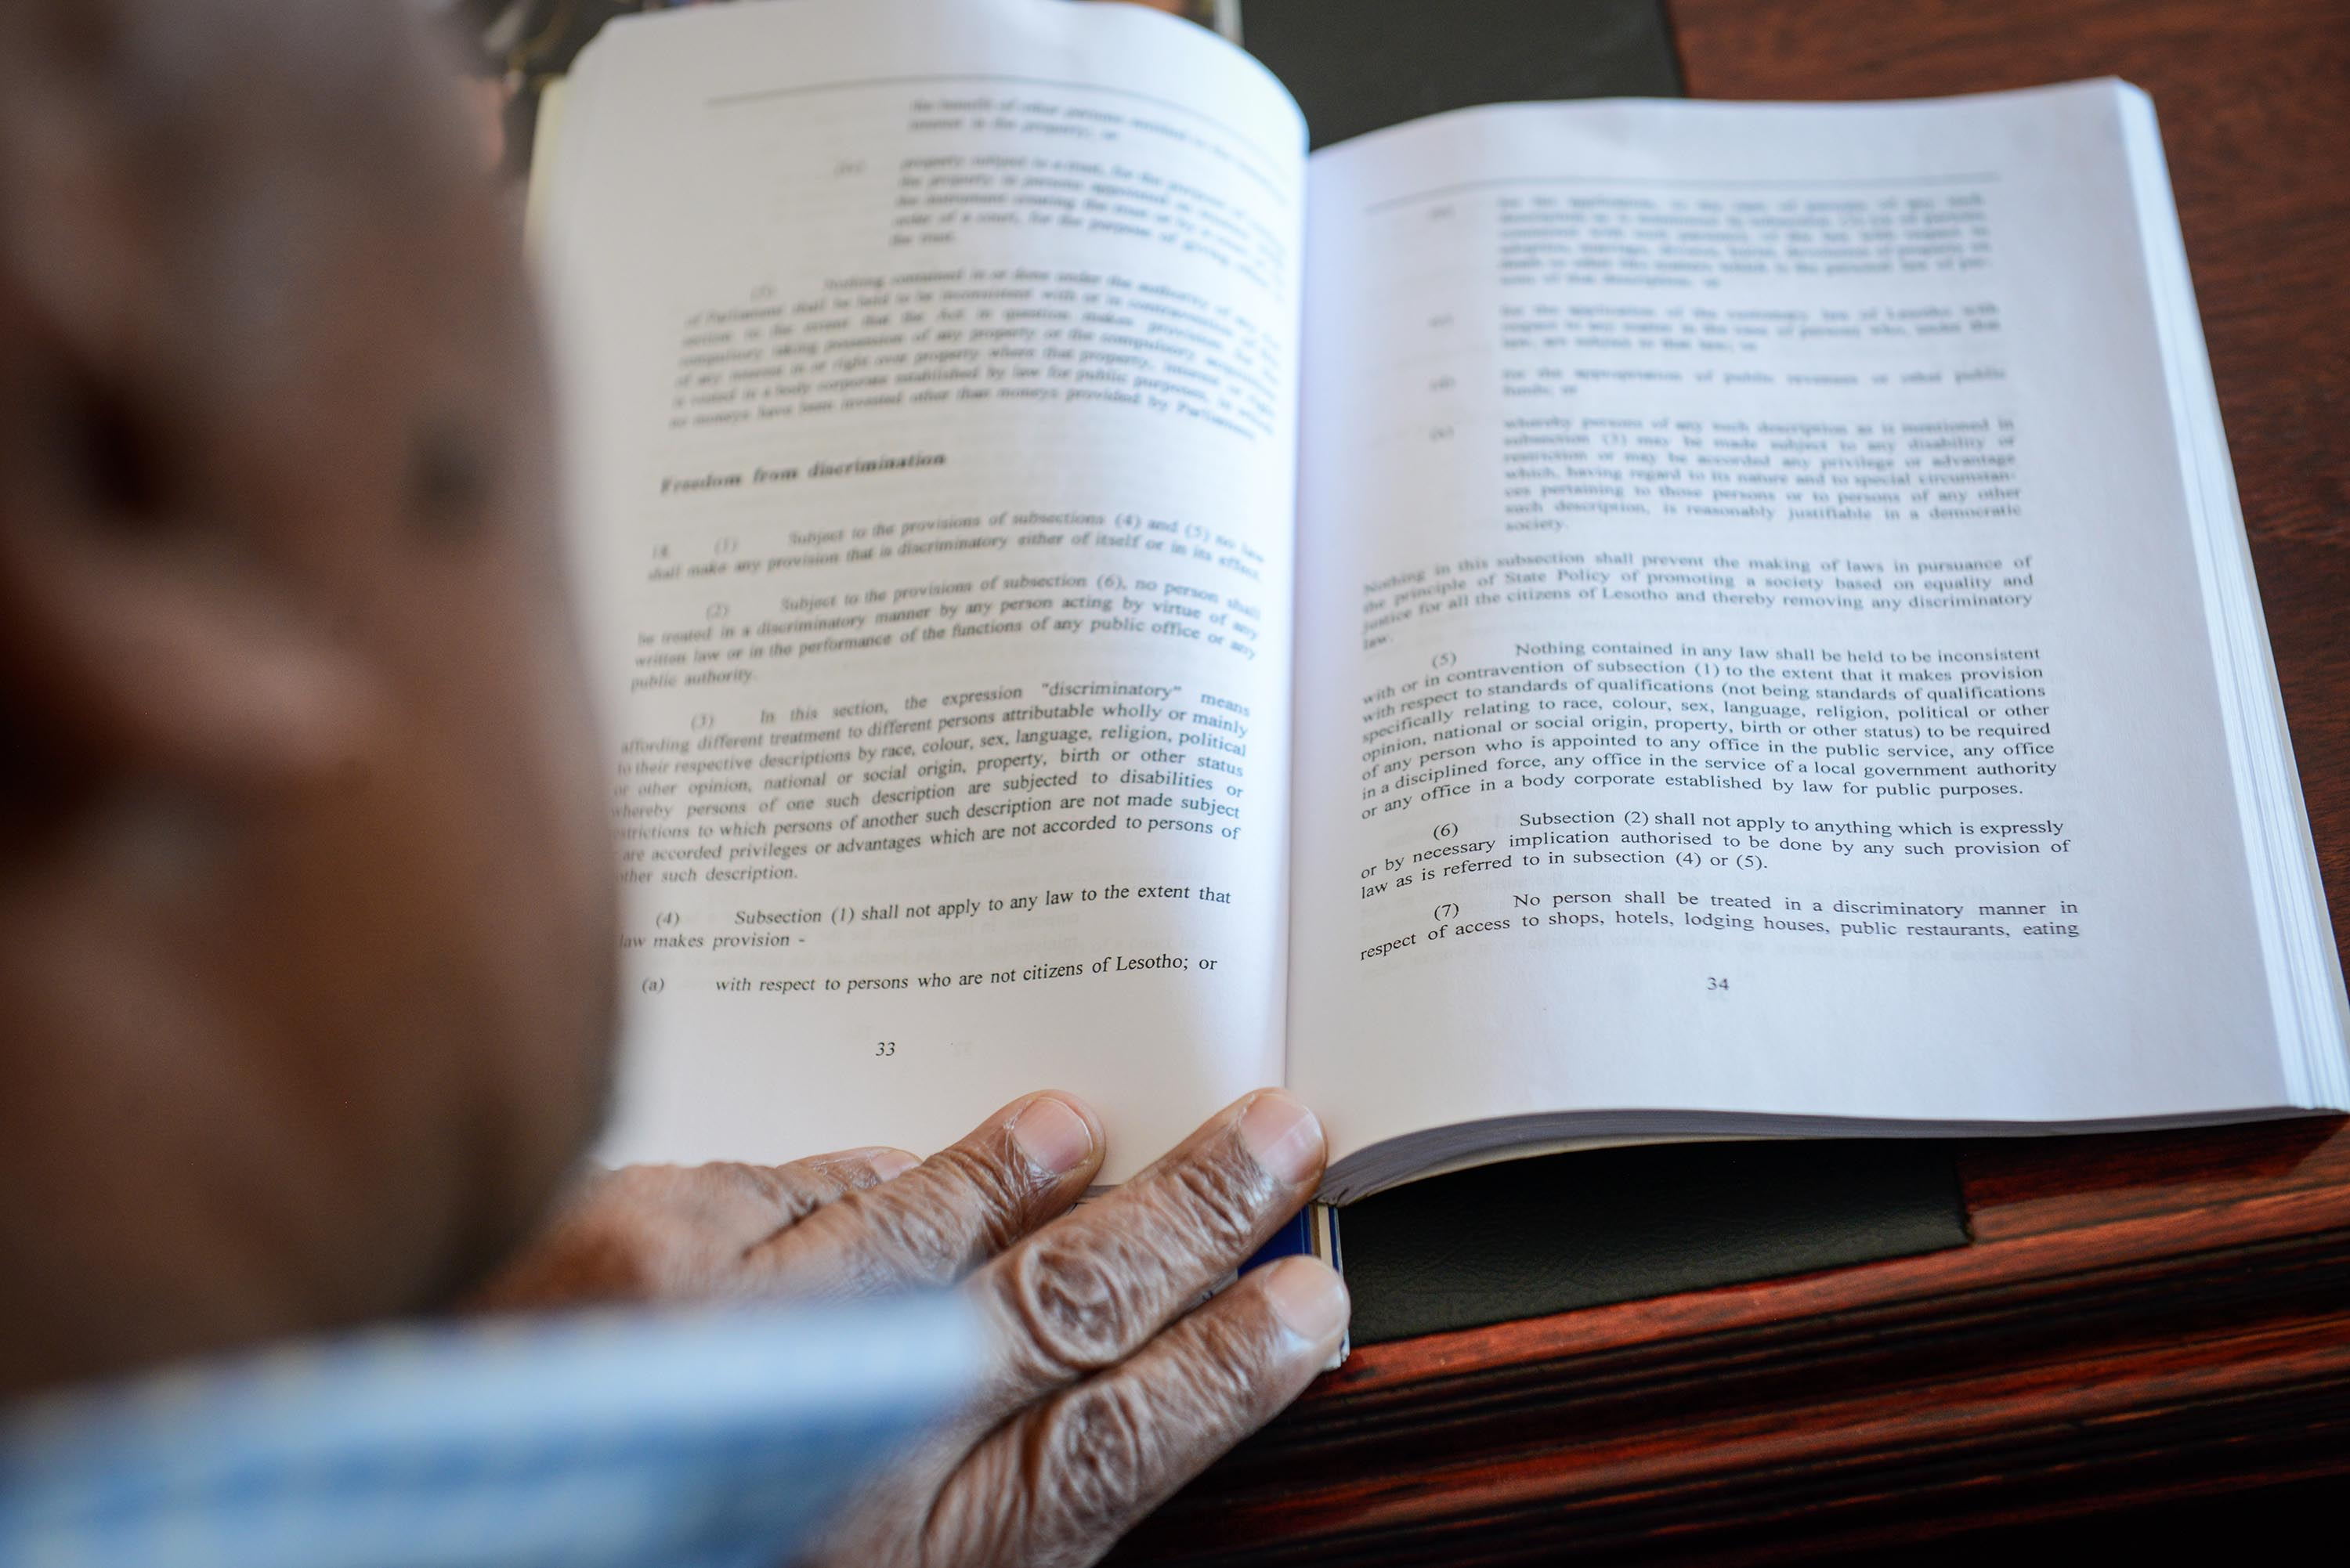 Khoabane Theko, principal chief of Thaba Bosiu, reads the law against discrimination in the Constitution of Lesotho.